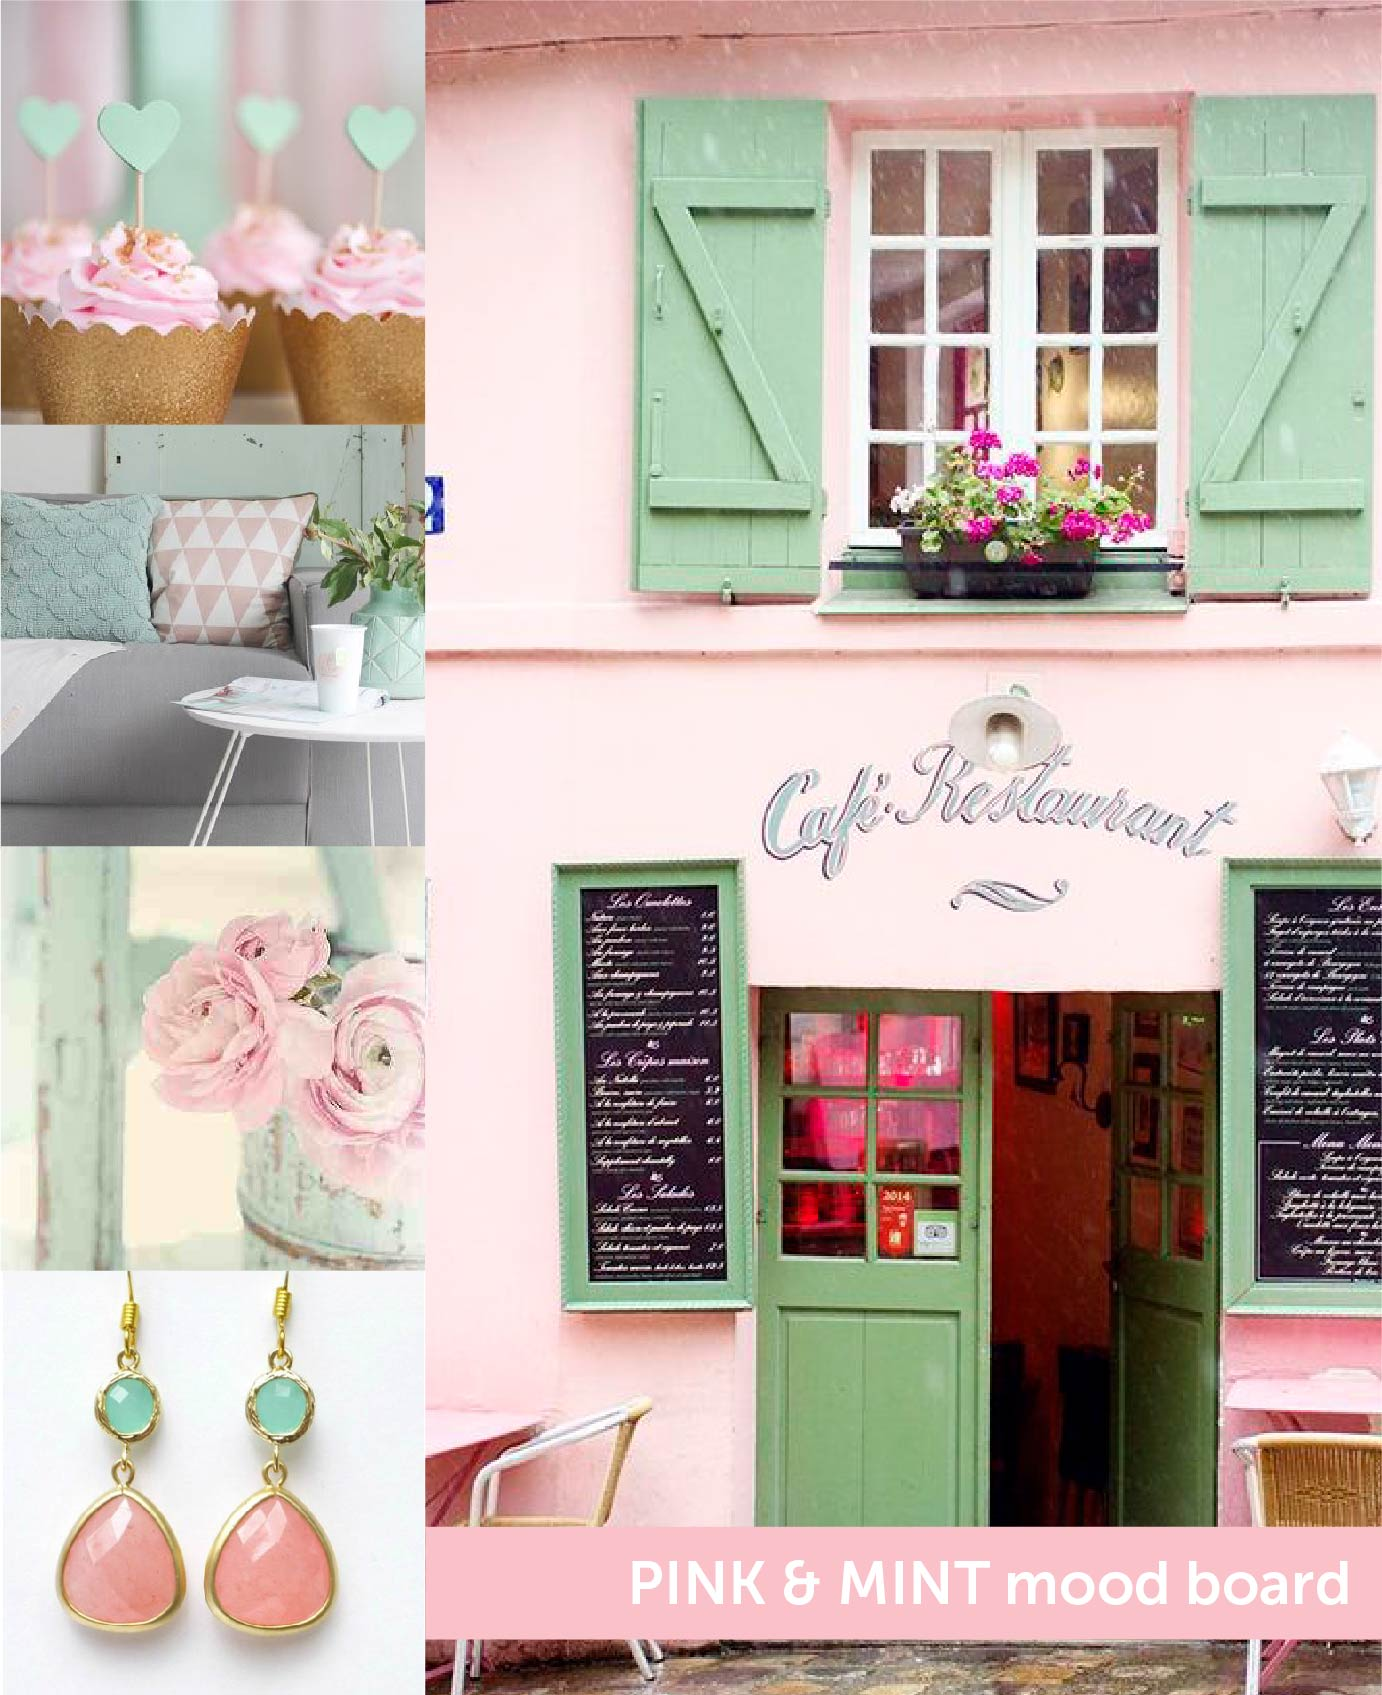 Pink & Mint Mood Board Studio Monday with Nina-Marie